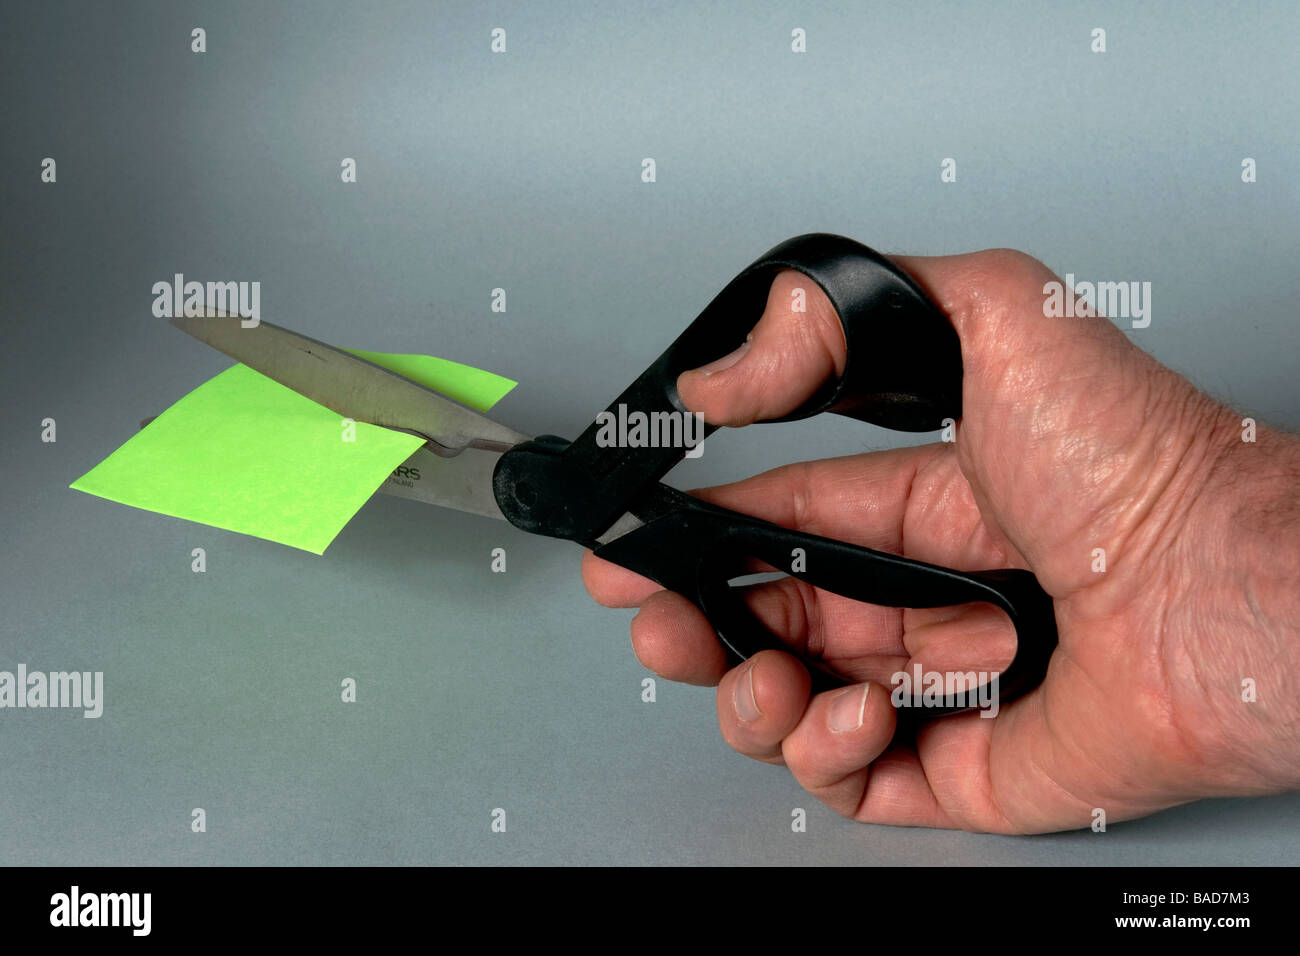 Male hand with scissors cutting green  sticky pad paper - Stock Image